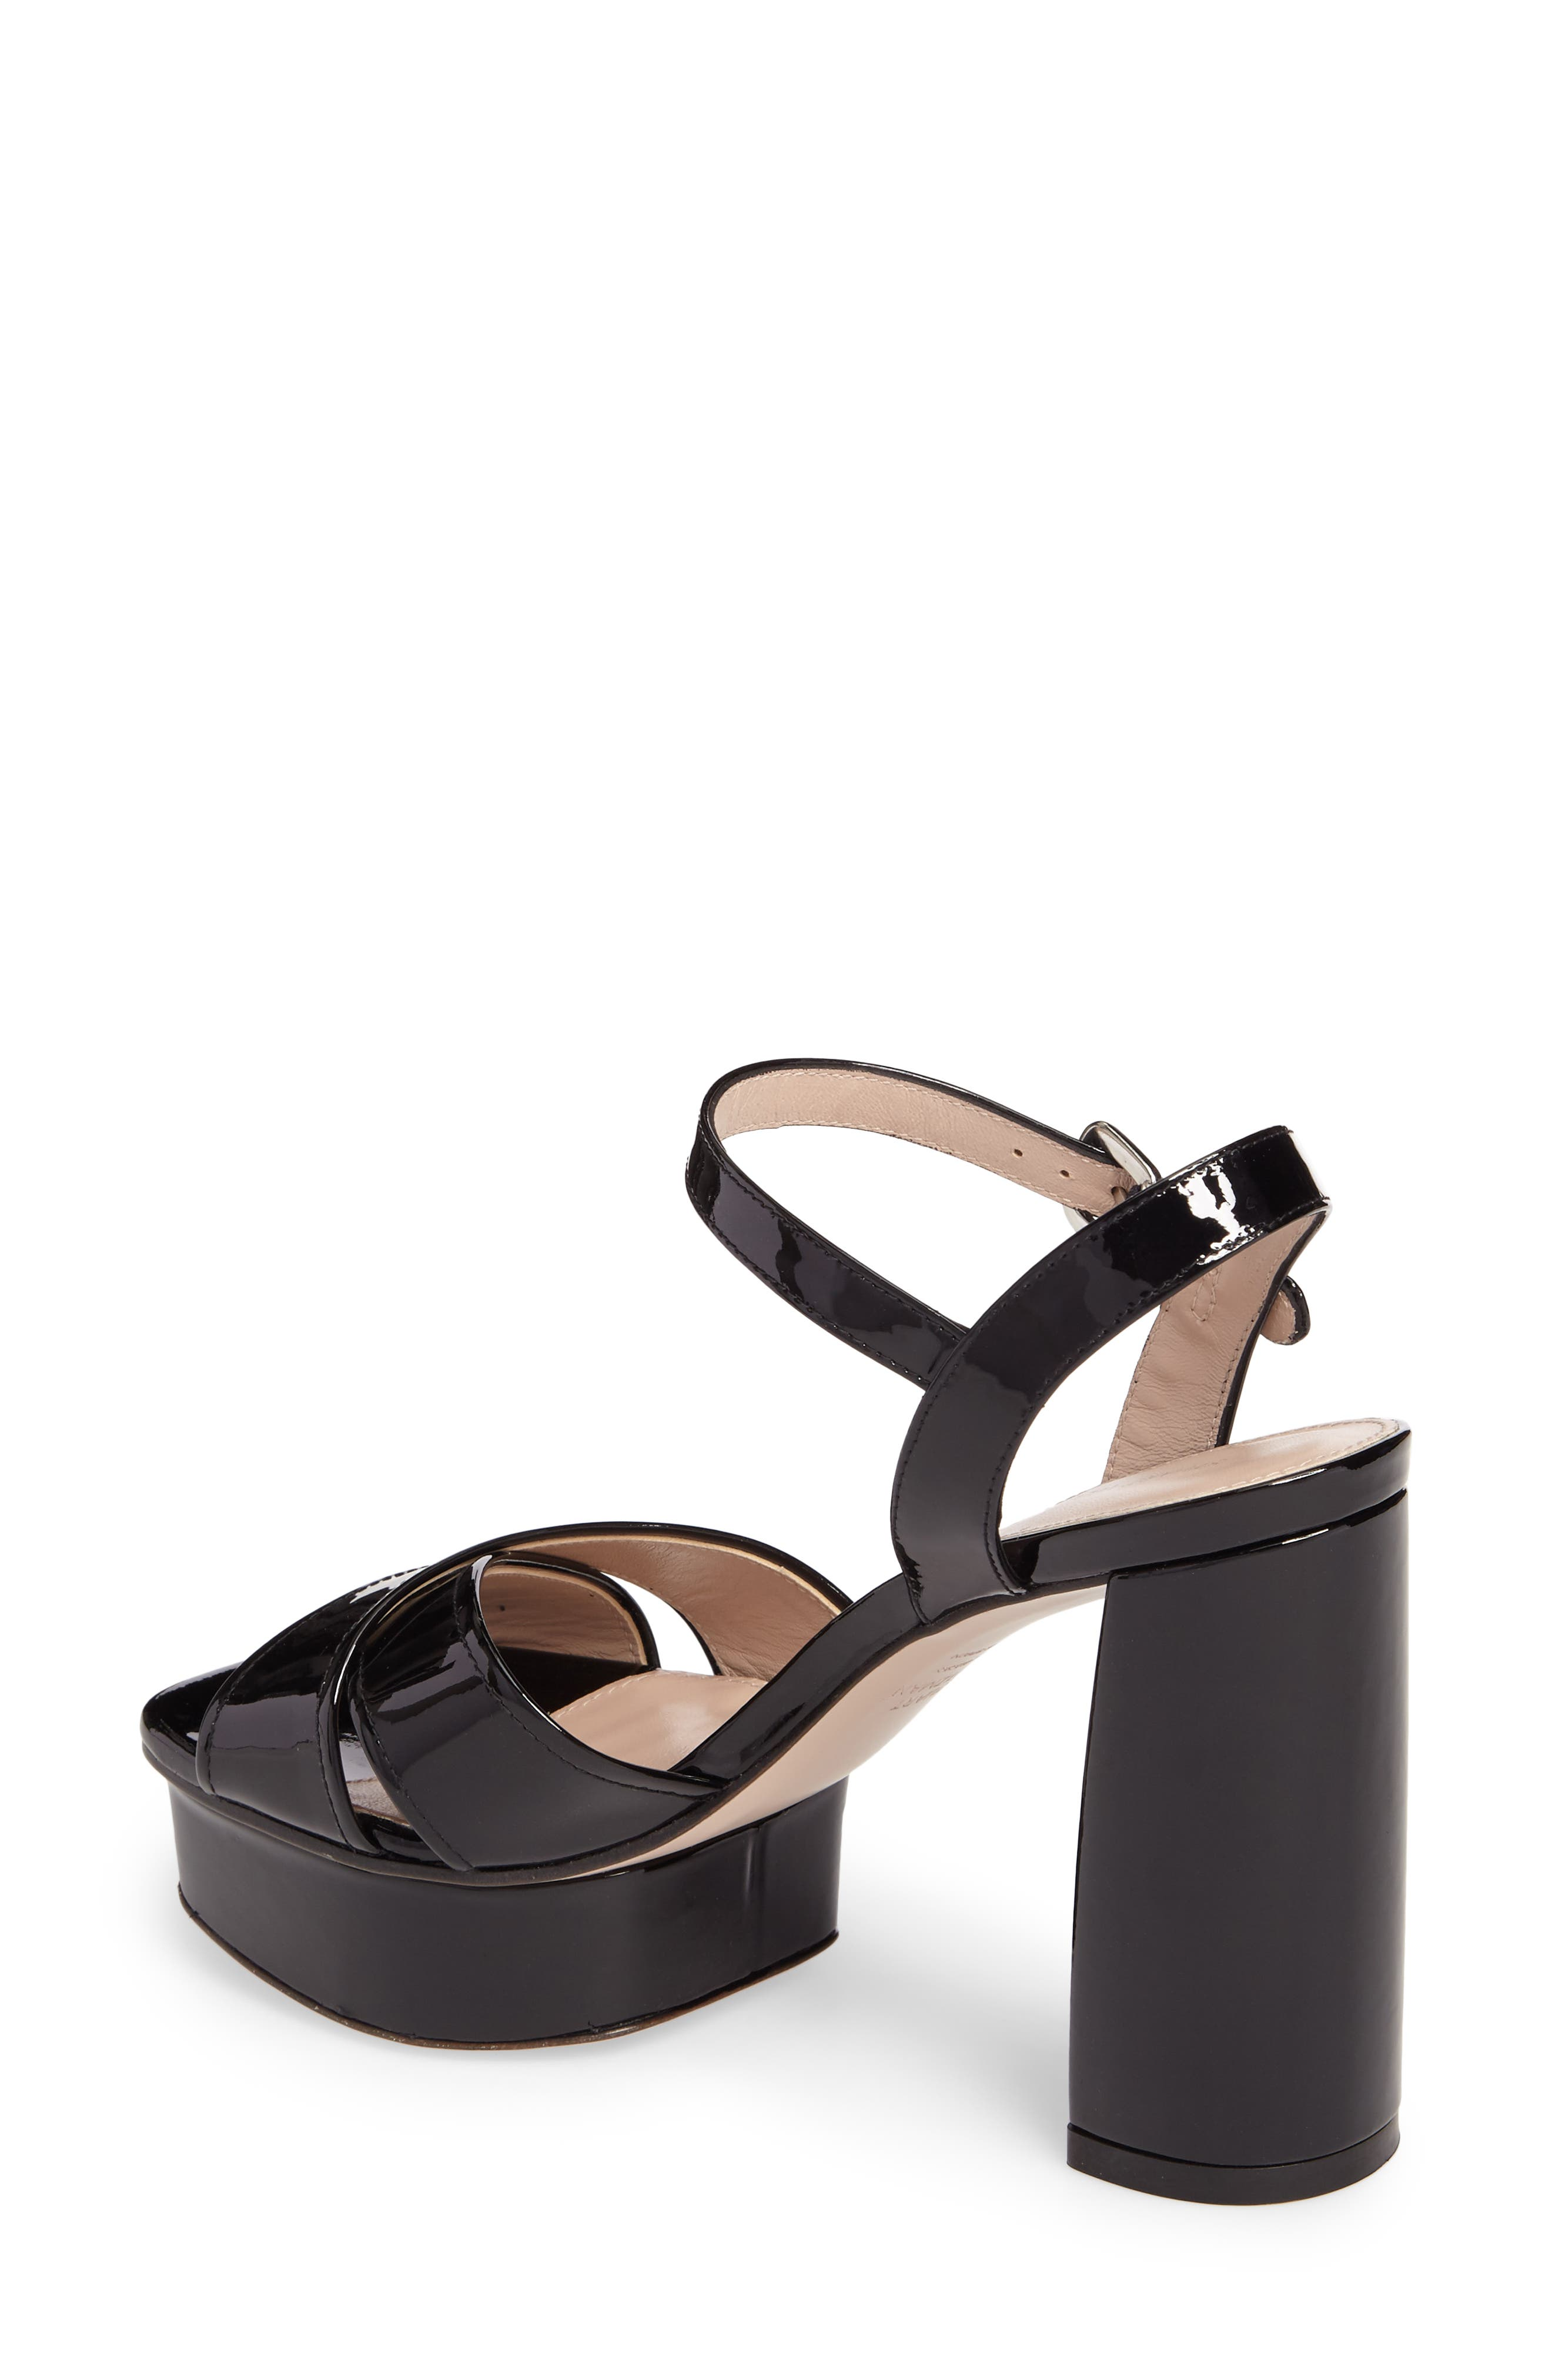 Exposed Platform Sandal,                             Alternate thumbnail 6, color,